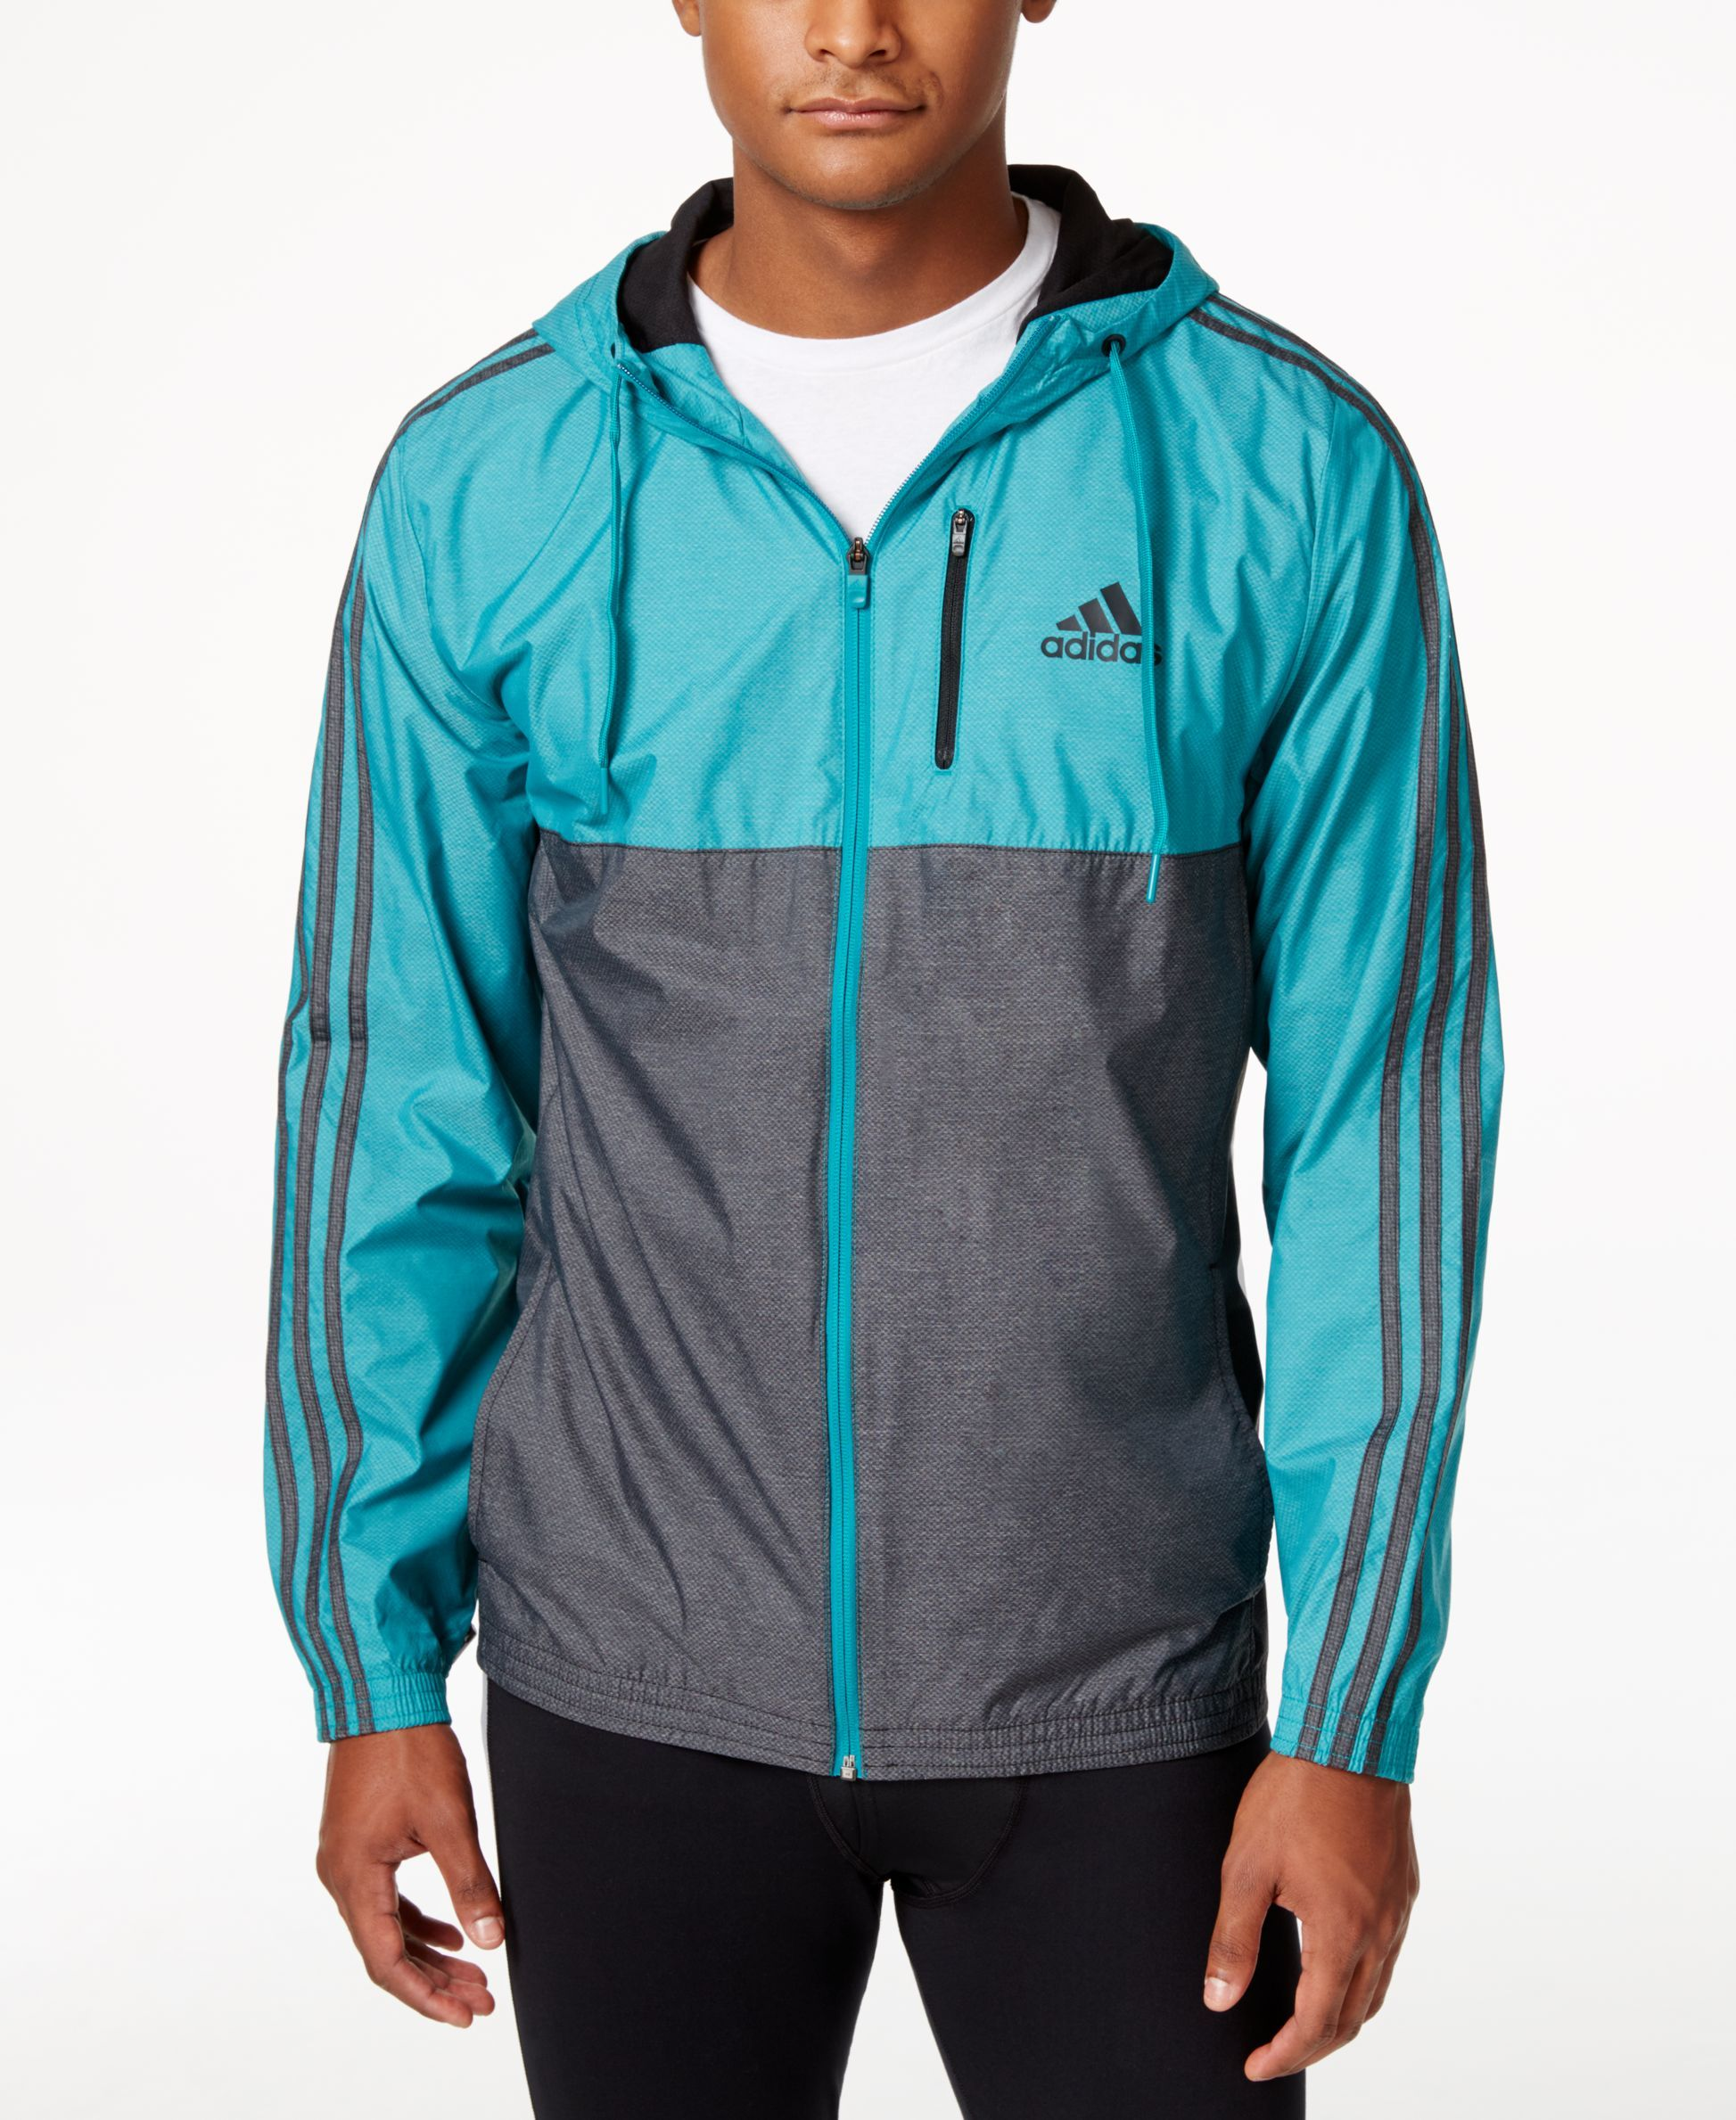 wholesale dealer 77109 c09f1 adidas Men s Full-Zip Essential Woven Jacket